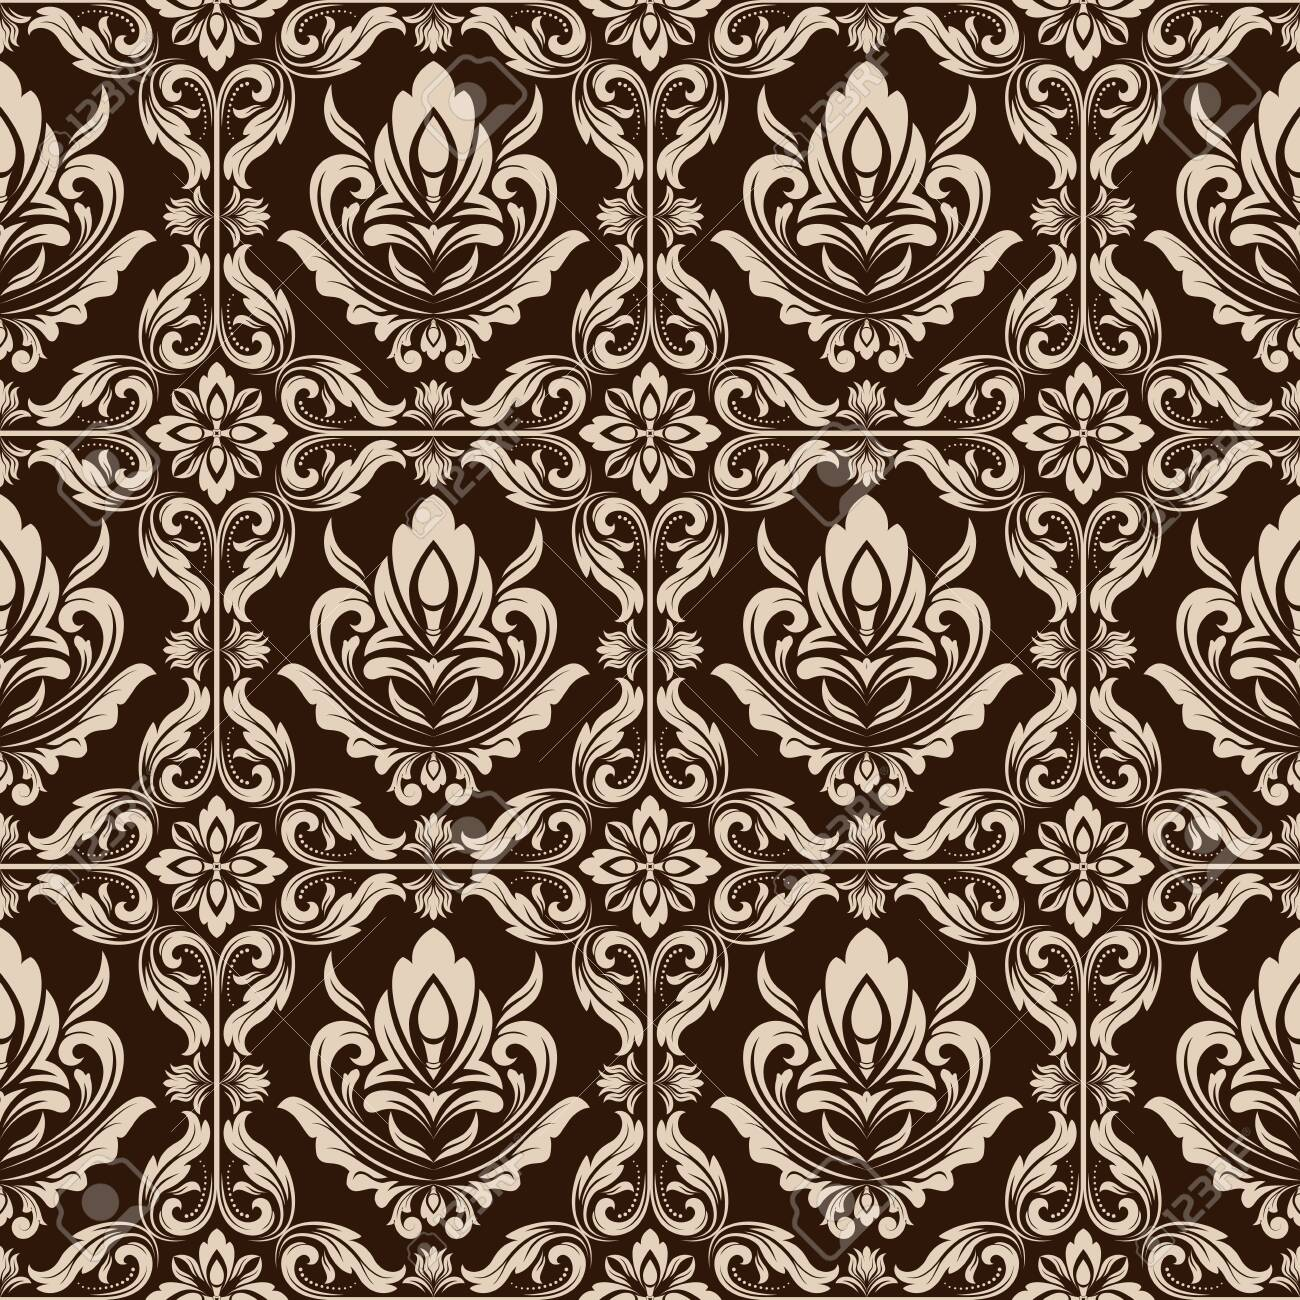 Retro Wallpaper Or Ancient Background With Beautiful Filigree